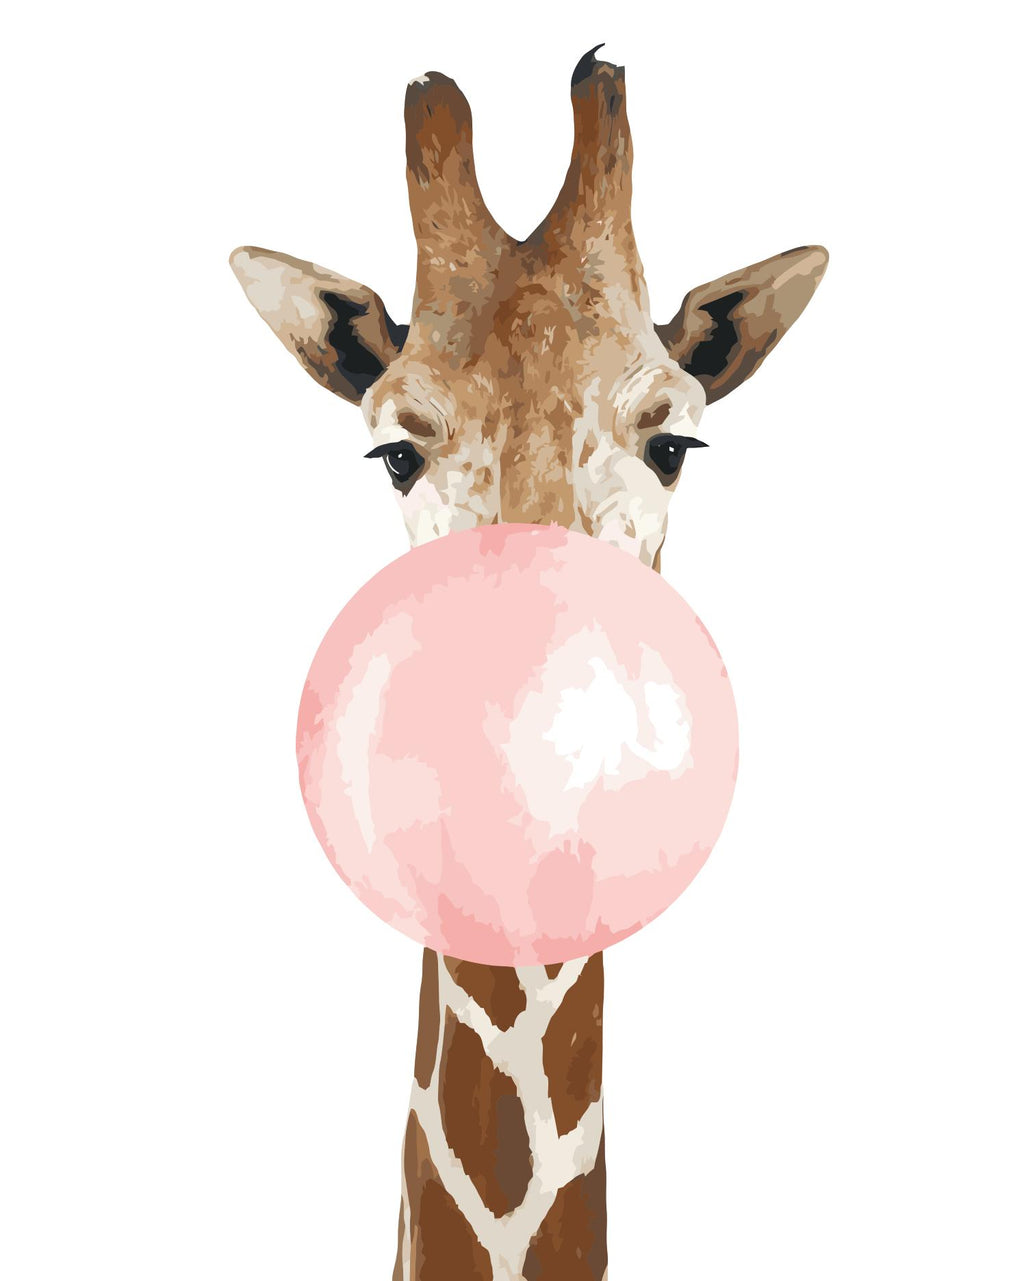 Animal Giraffe Paint By Numbers Kits UK For Adult HQD1236